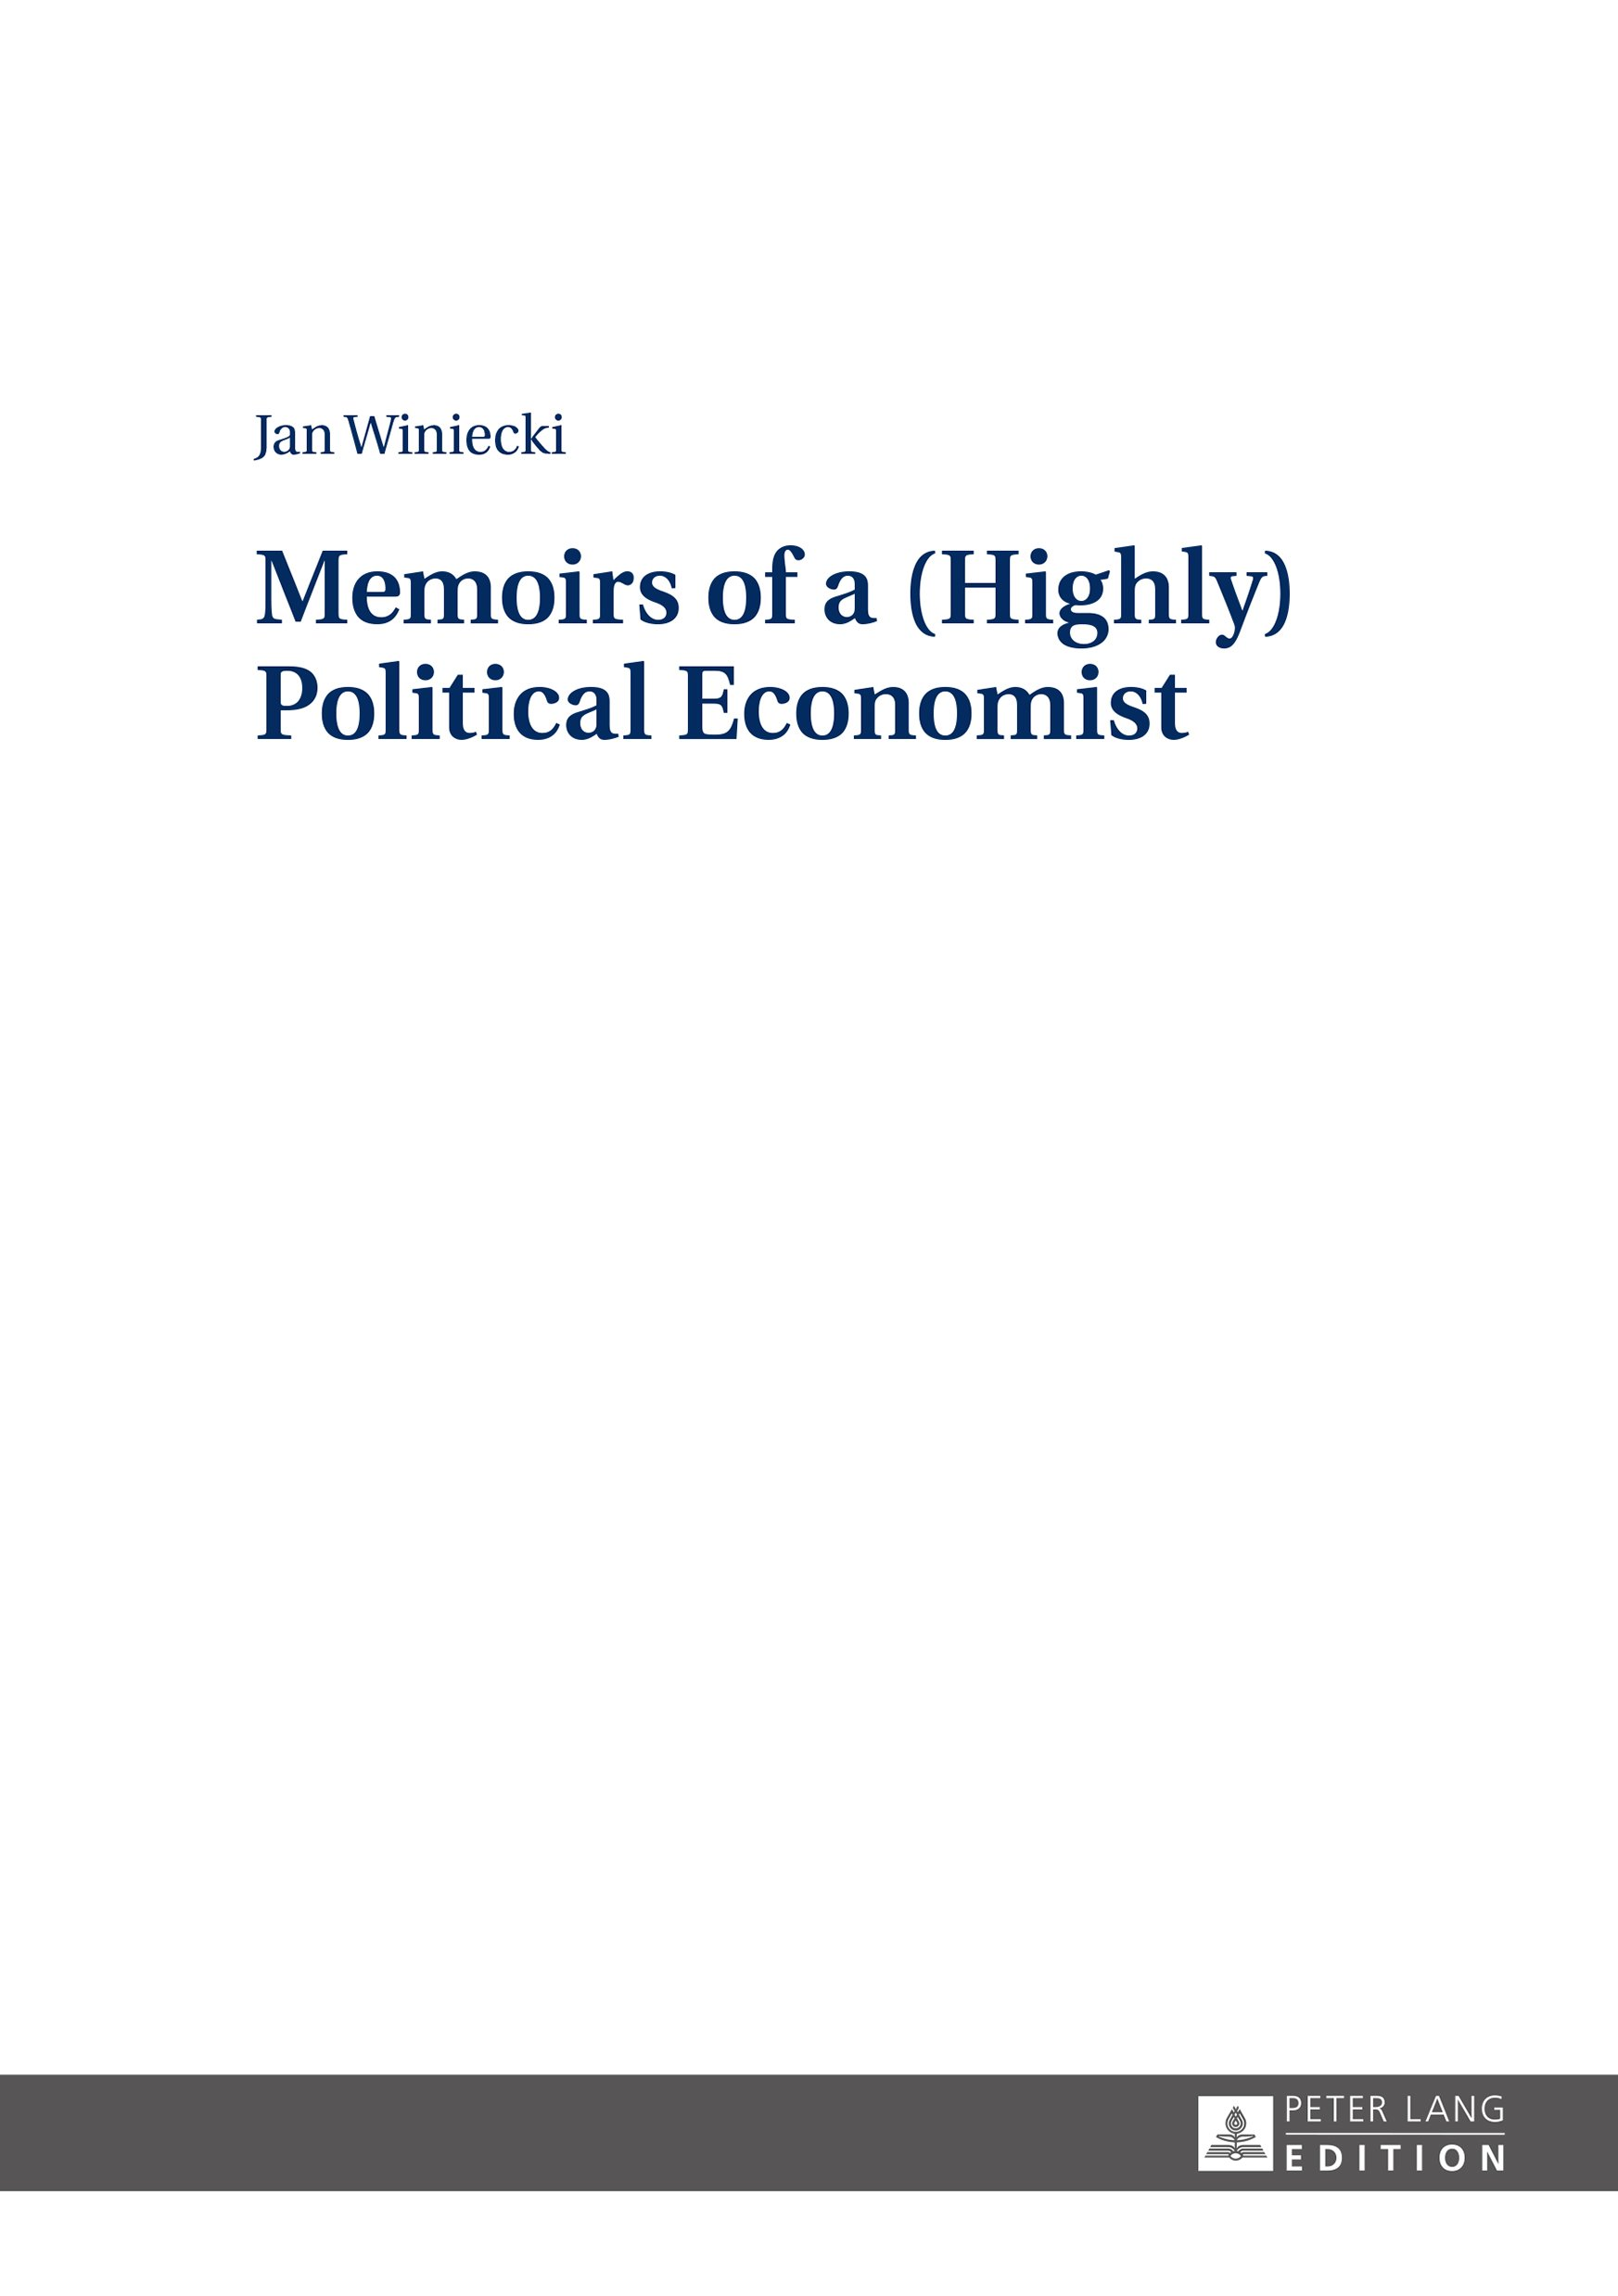 Memoirs of a (Highly) Political Economist